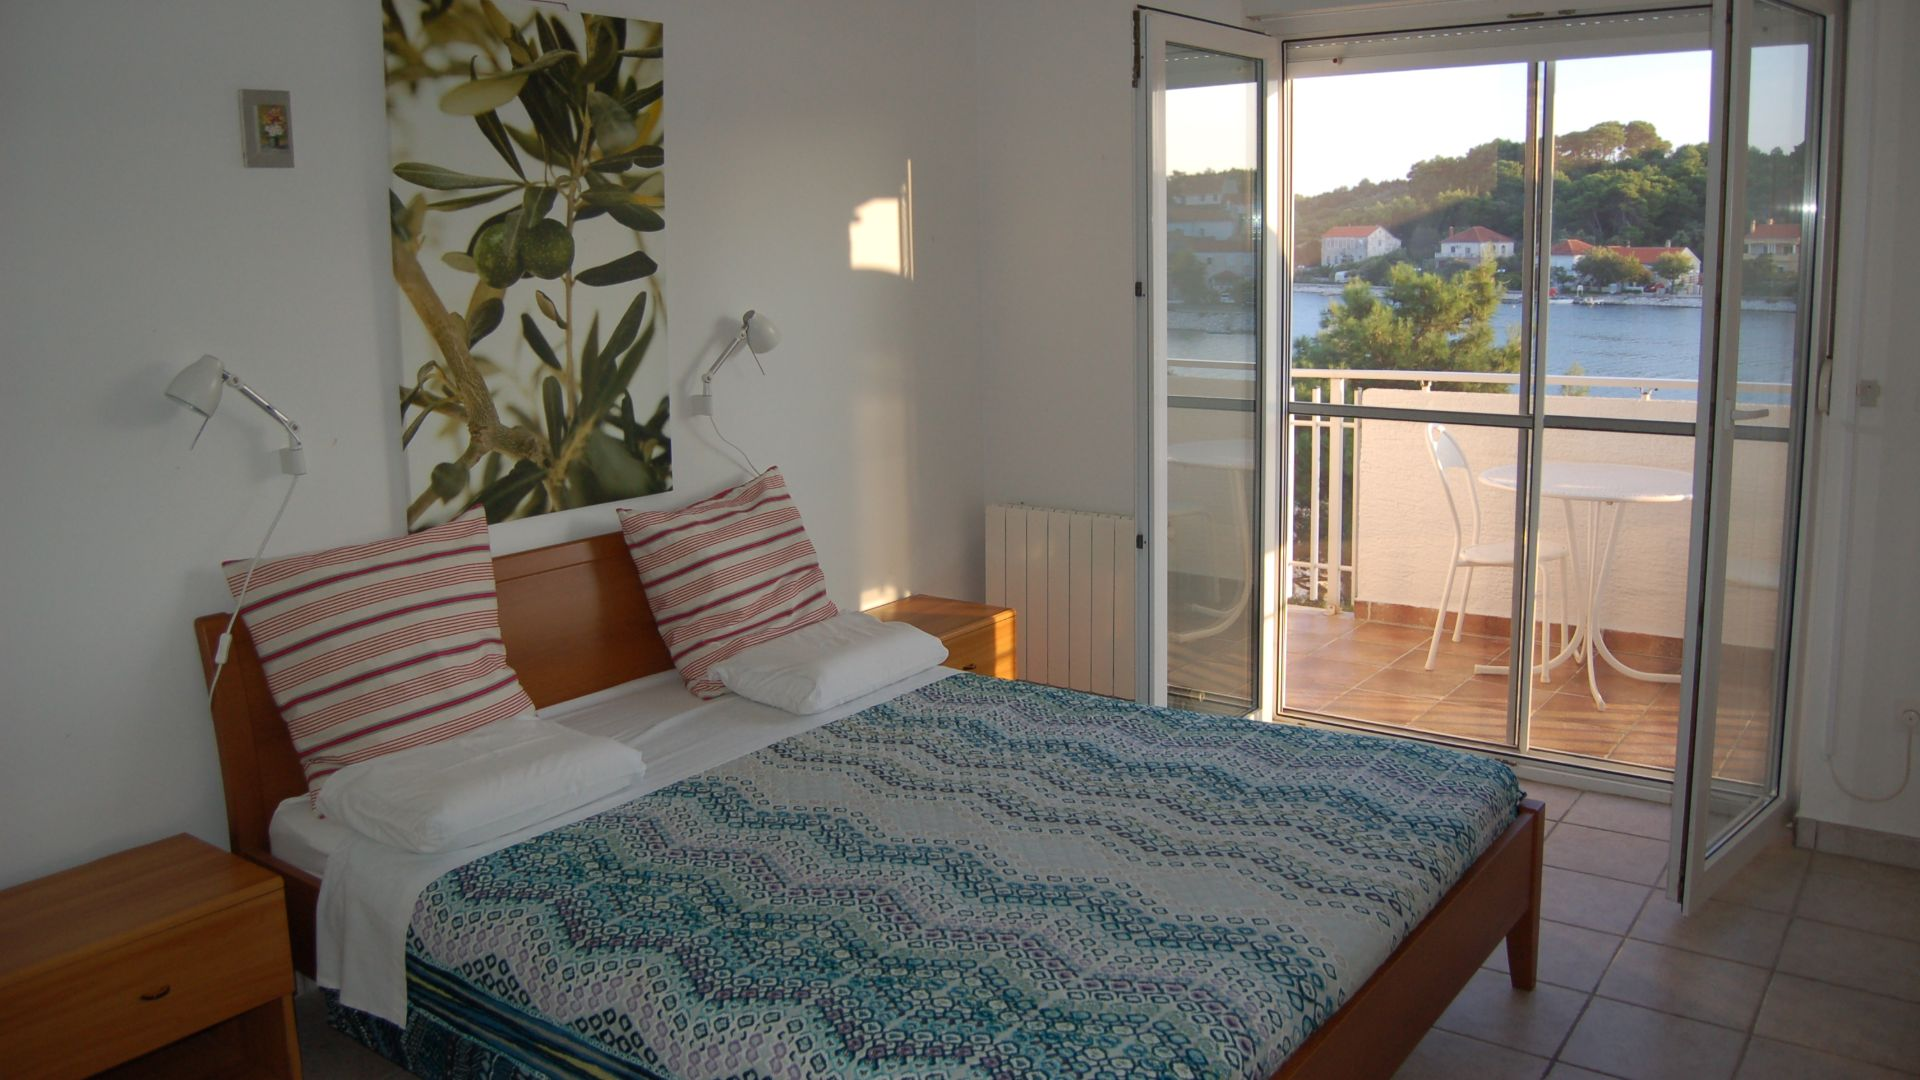 apartment-sea-view-gorgonia-dugi-otok (4)